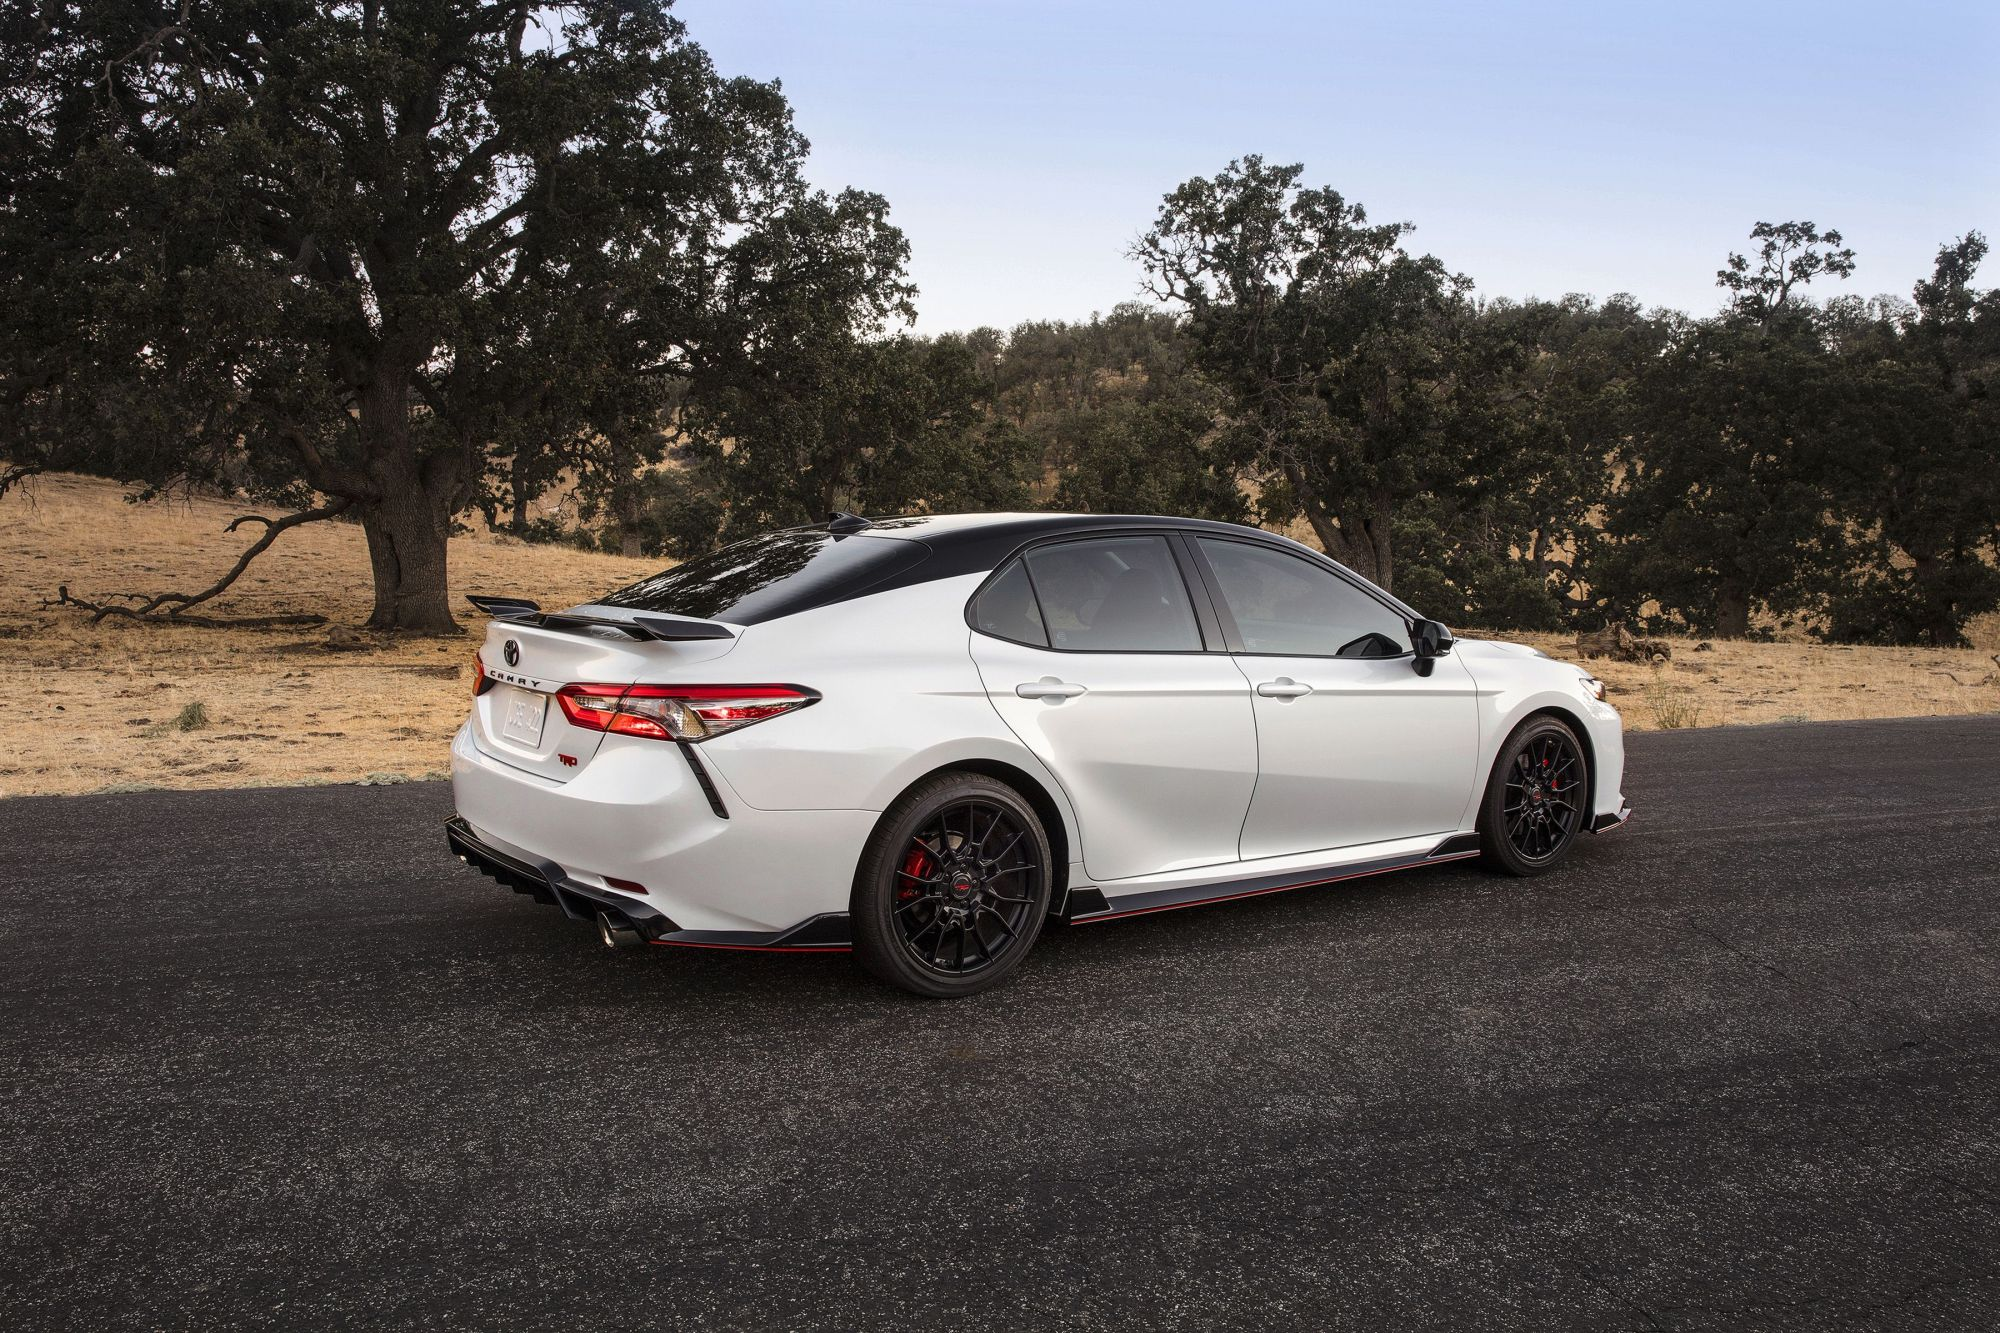 hight resolution of vwvortex com 2020 toyota camry trd has red seatbelts and the chassis mods to back them up claims track ready